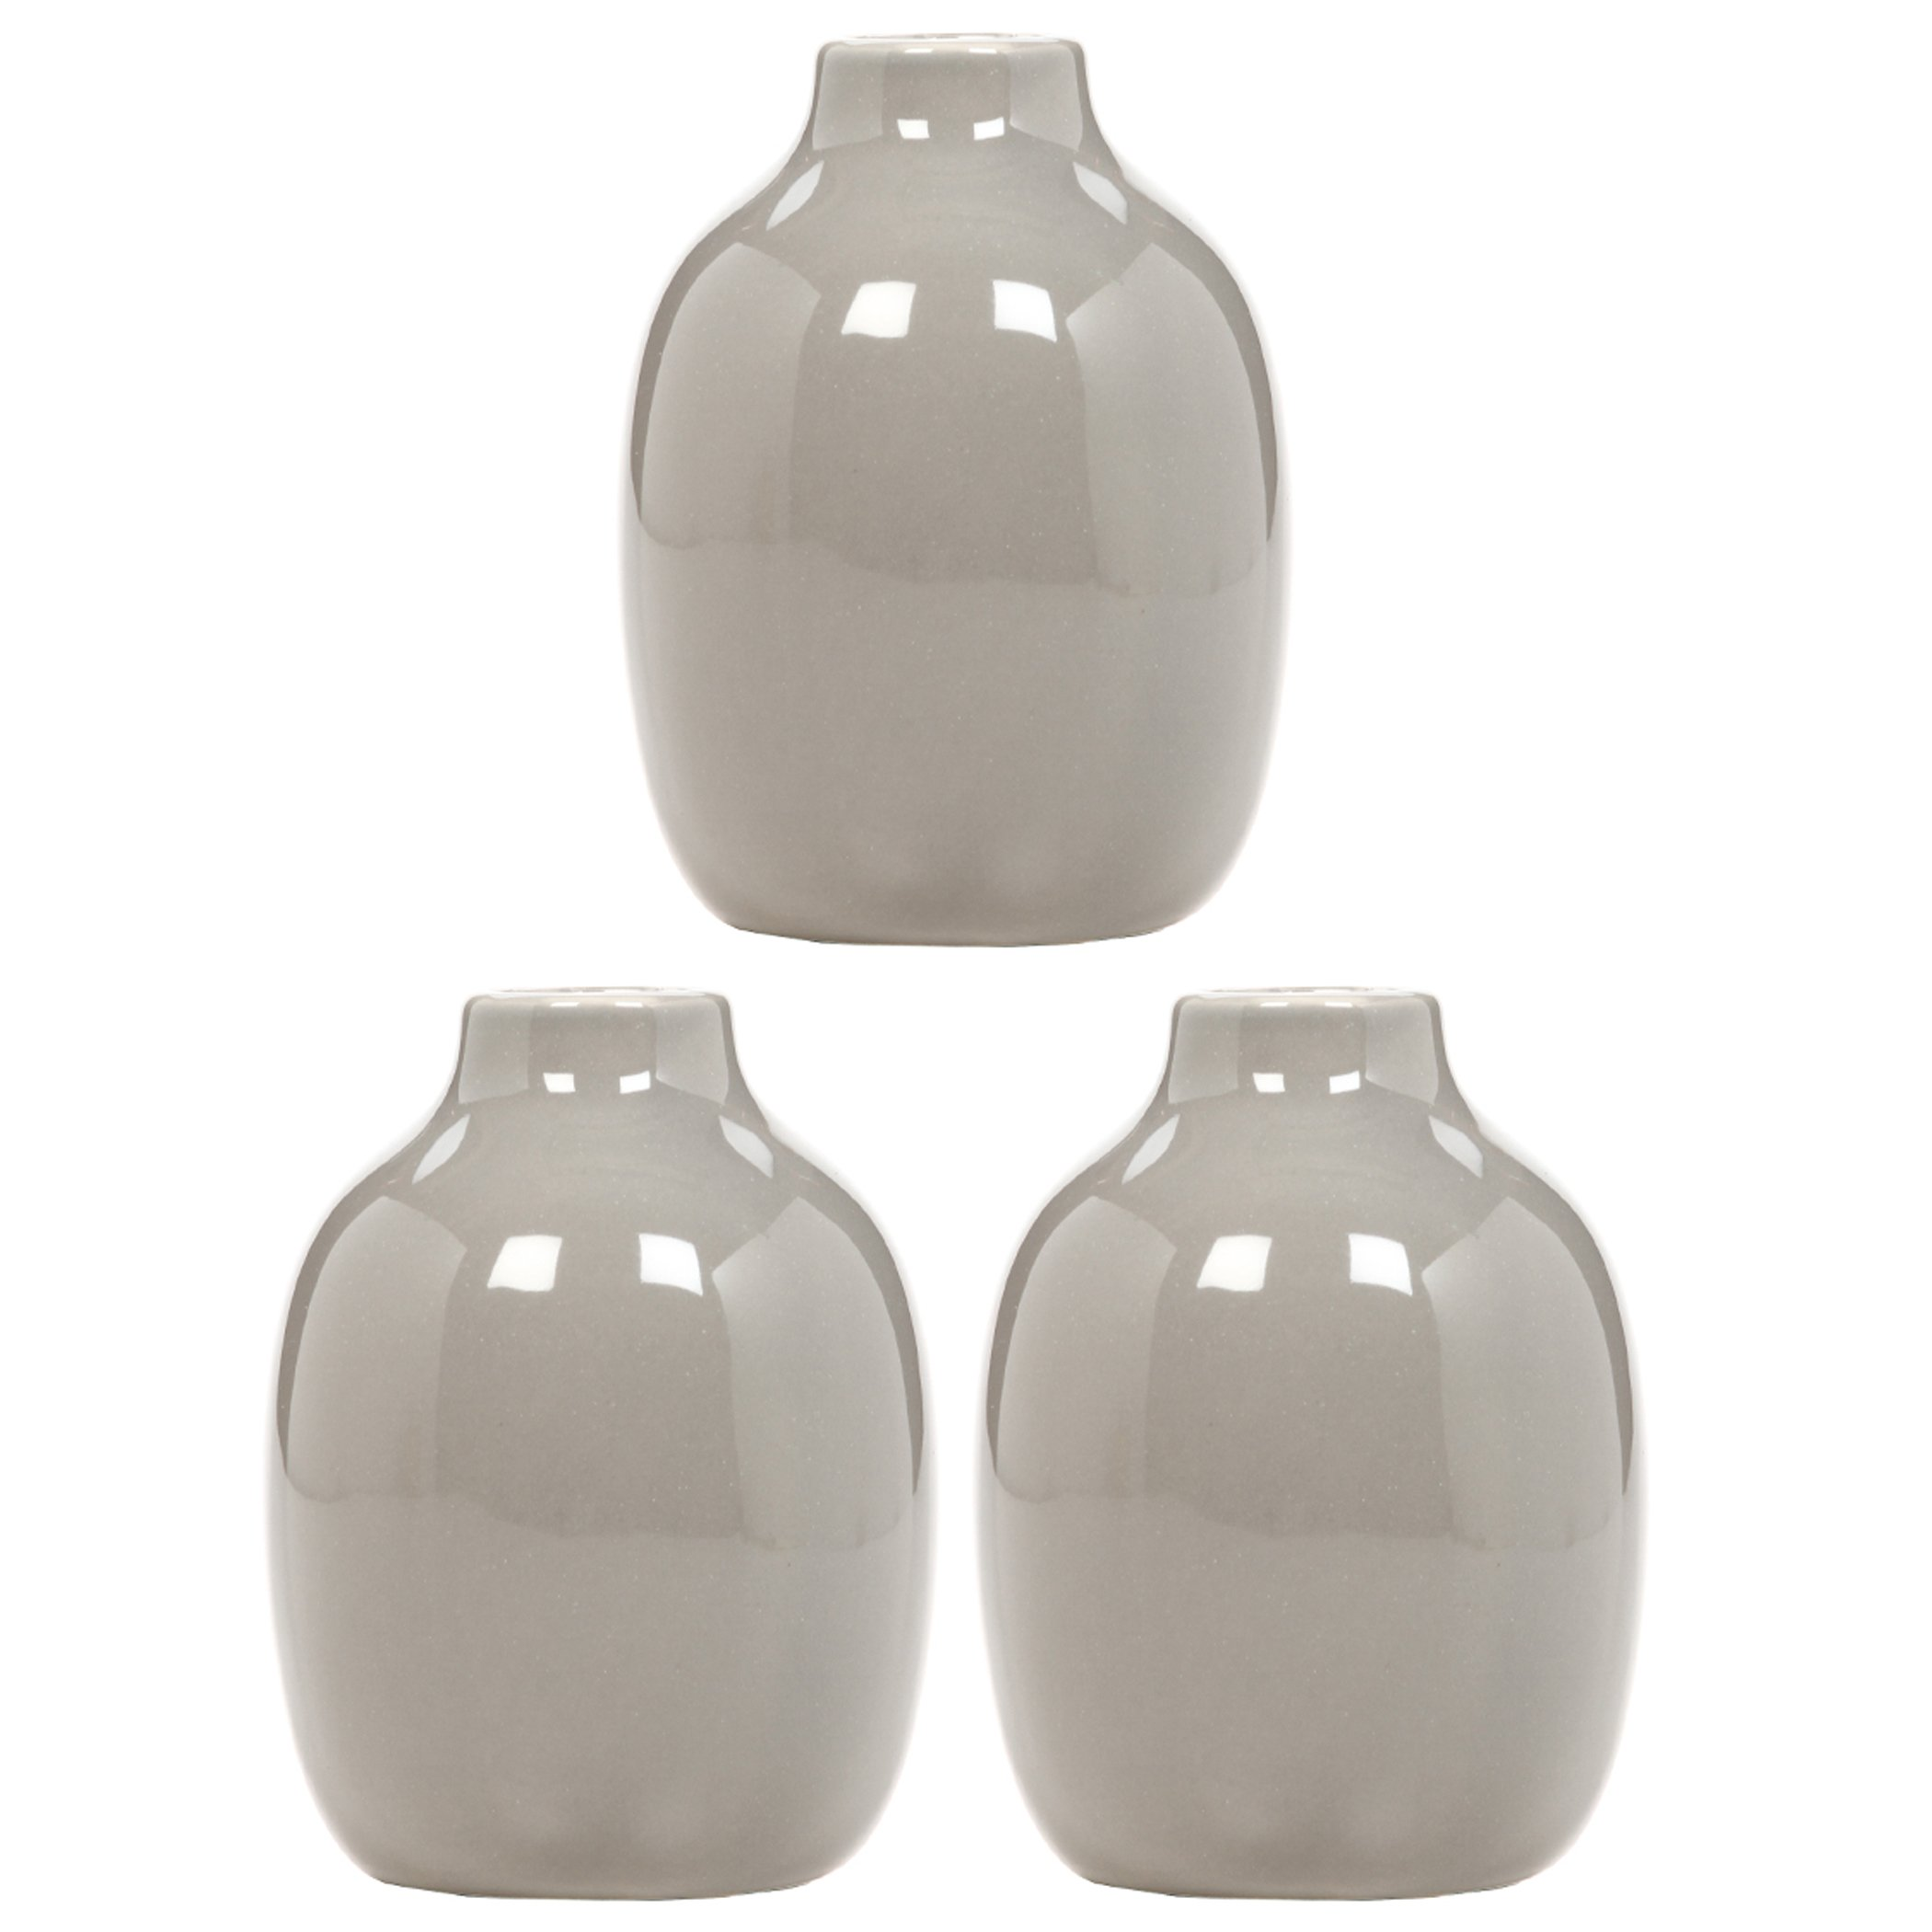 Hosley Set of 3 Taupe Ceramic Vases - 5.12'' High. Ideal for Dried Floral Arrangements, for Weddings, Spa and Aromatherapy Settings, or as a Gift O9